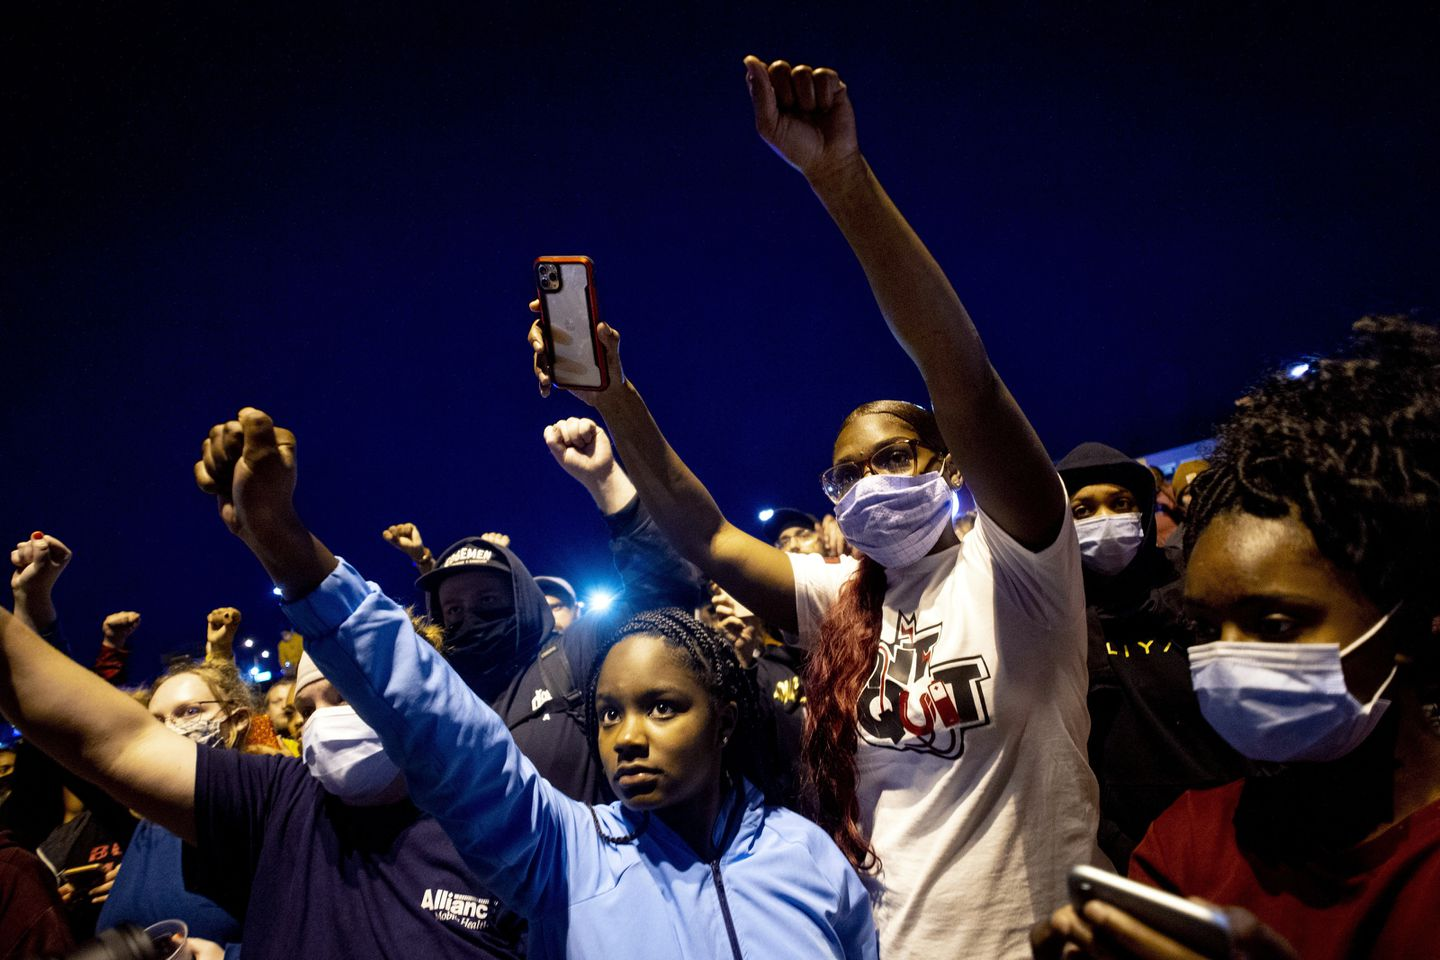 People march at a peaceful protest seeking justice for George Floyd in Flint Township, Michigan.